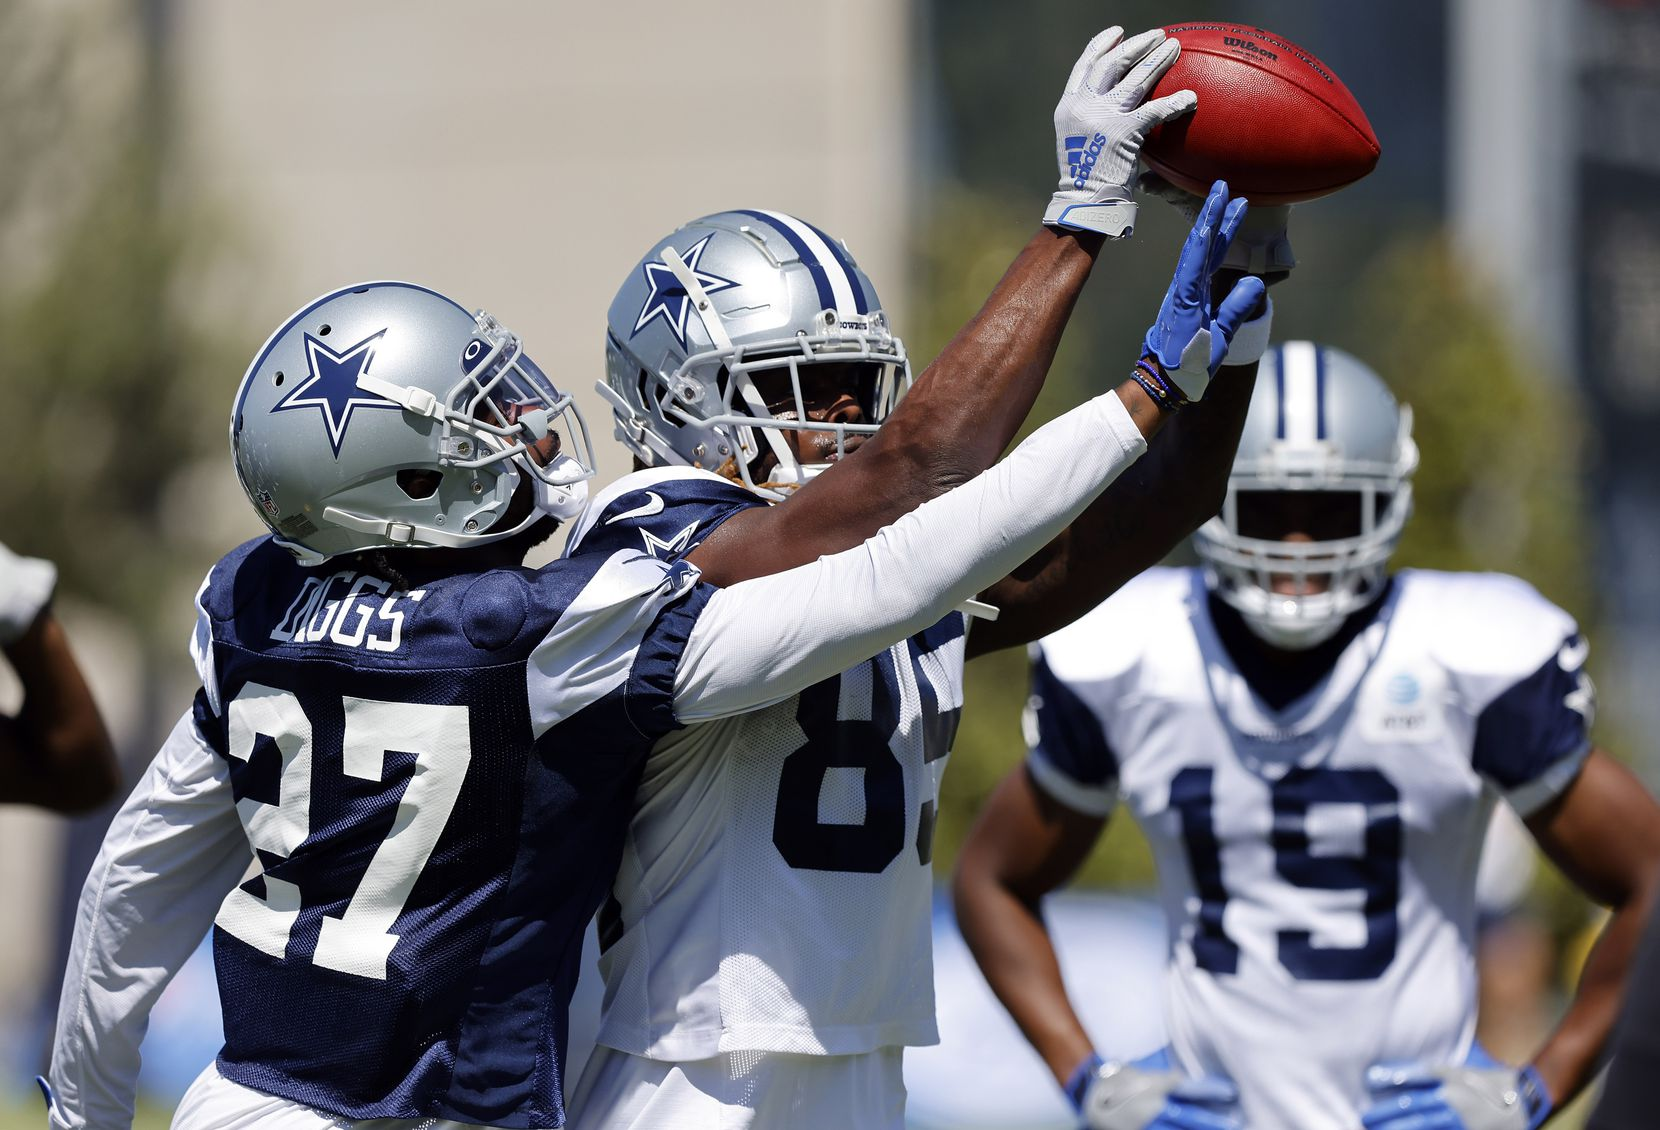 Dallas Cowboys cornerback Trevon Diggs (27) trees to knock the ball from Dallas Cowboys wide receiver Noah Brown's (85) hands during Training Camp practice drills at The Star in Frisco, Texas, Tuesday, August 24, 2021.